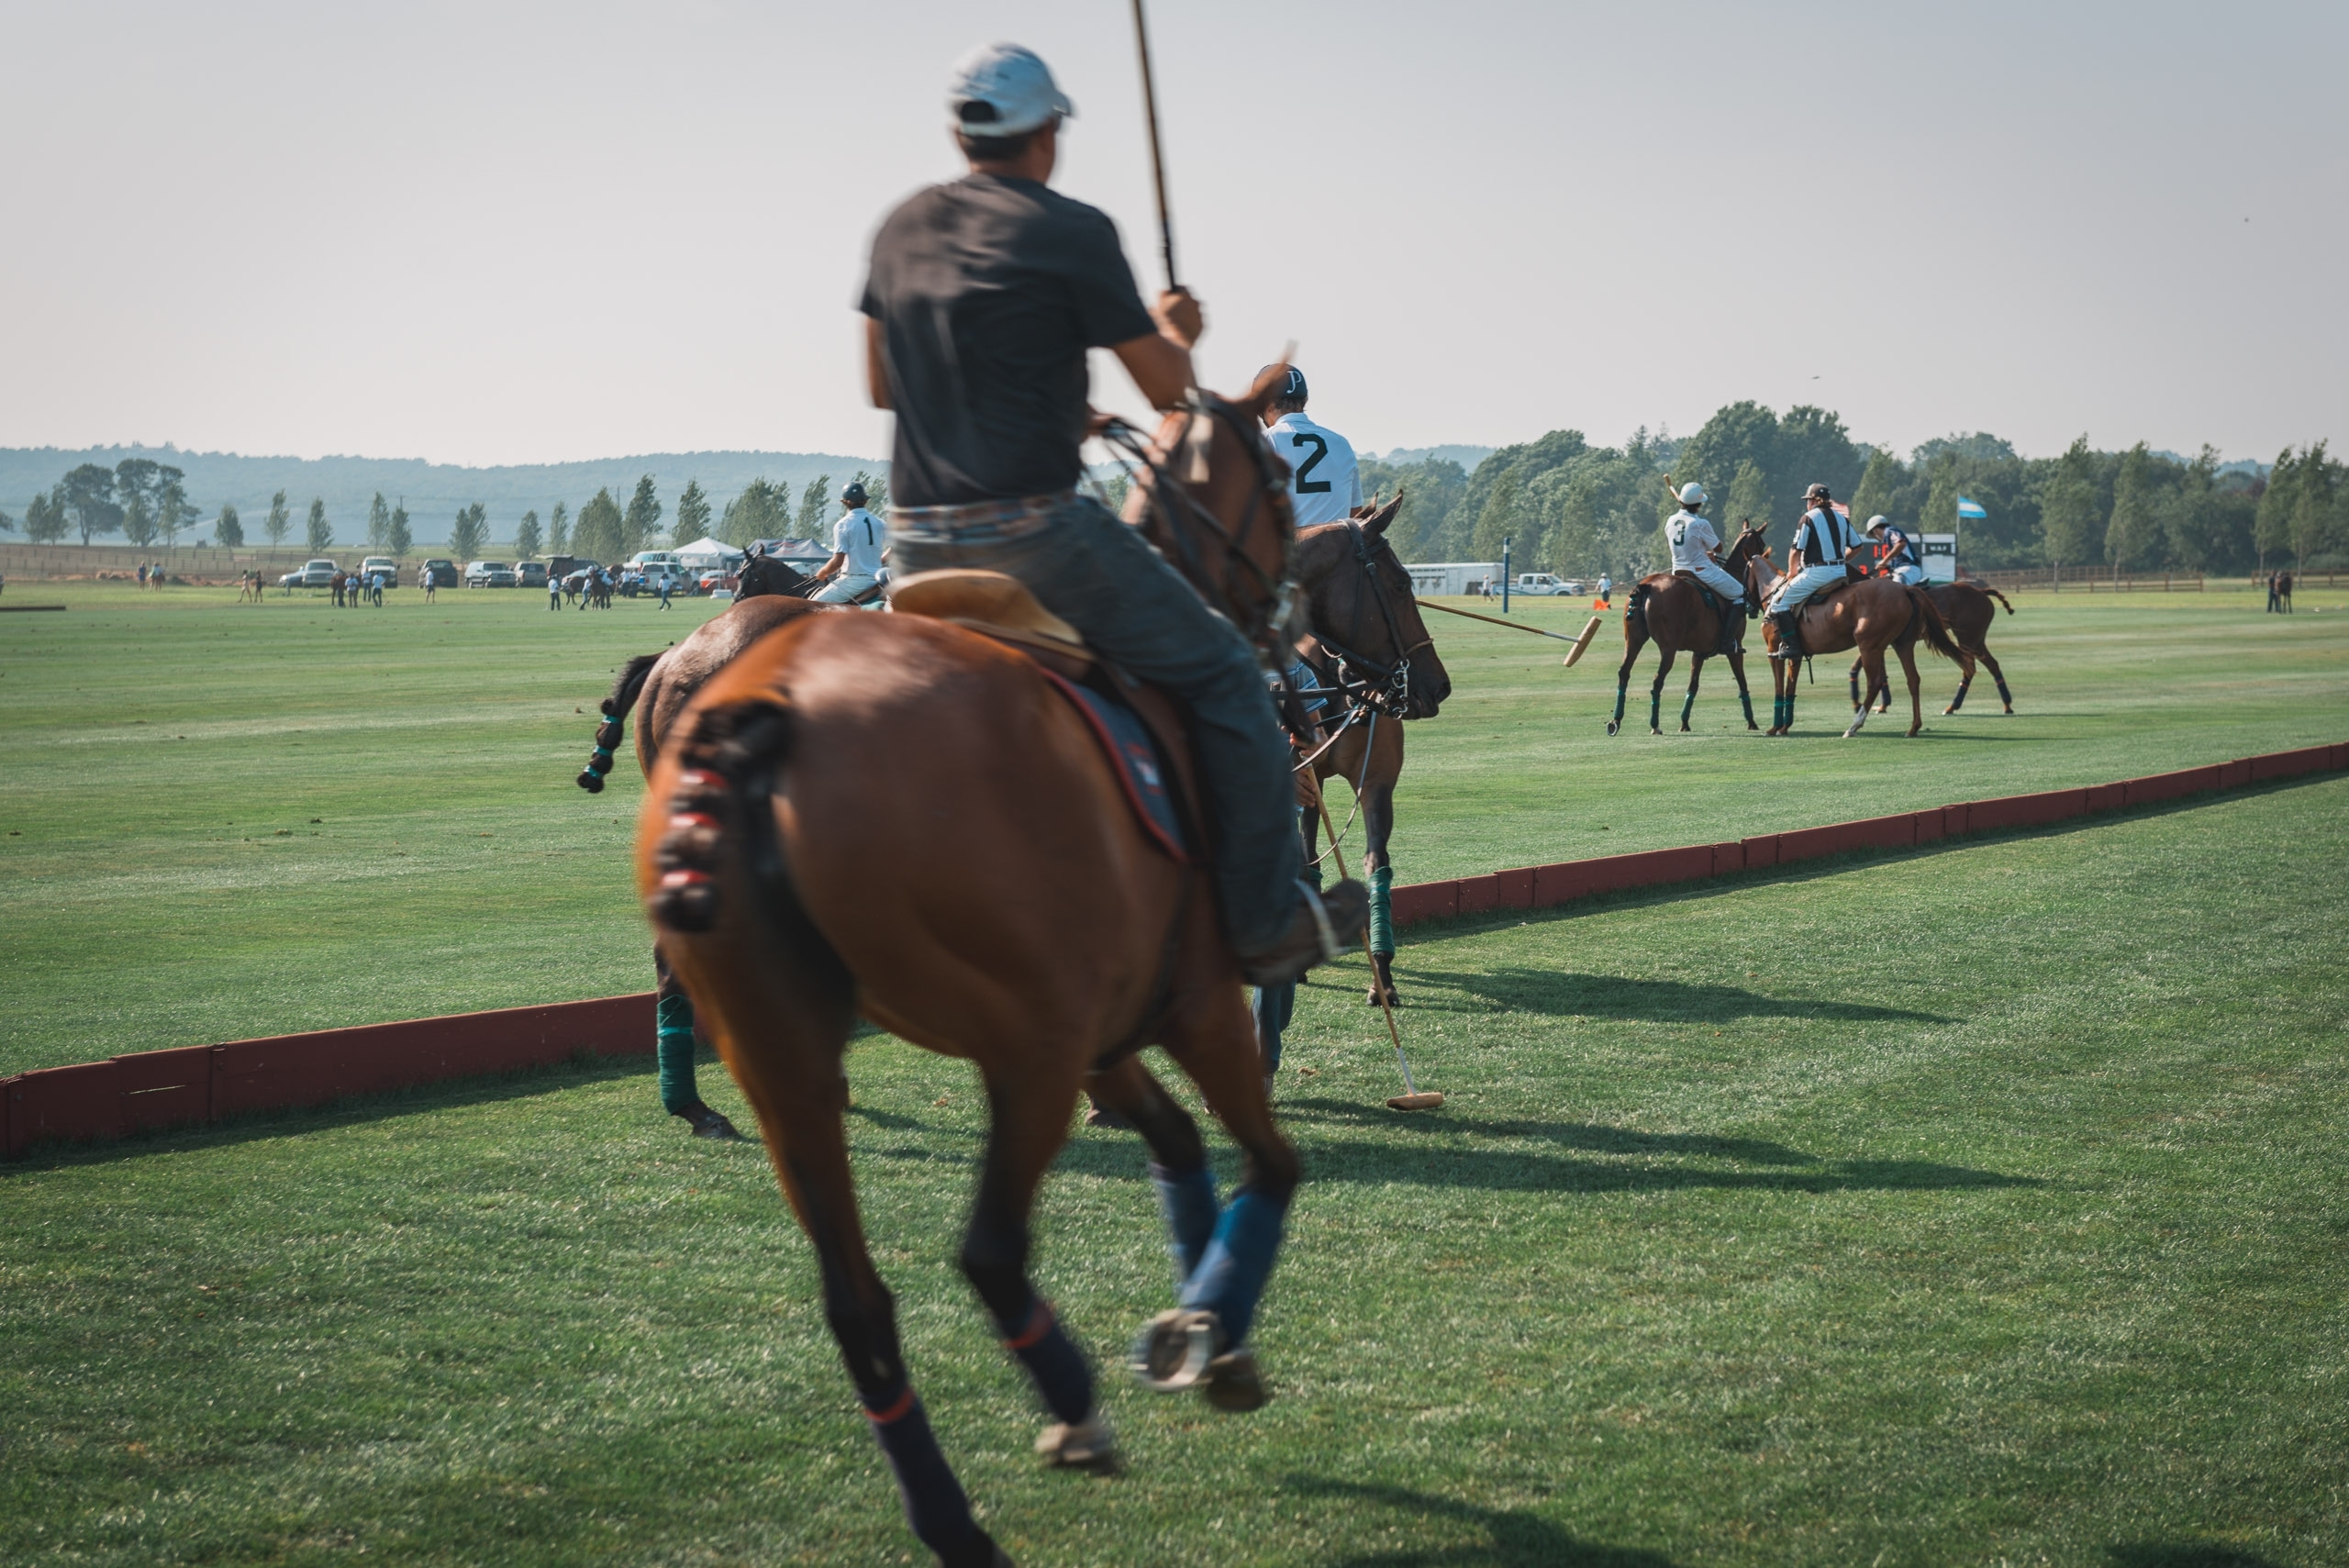 The Polo Match Begins